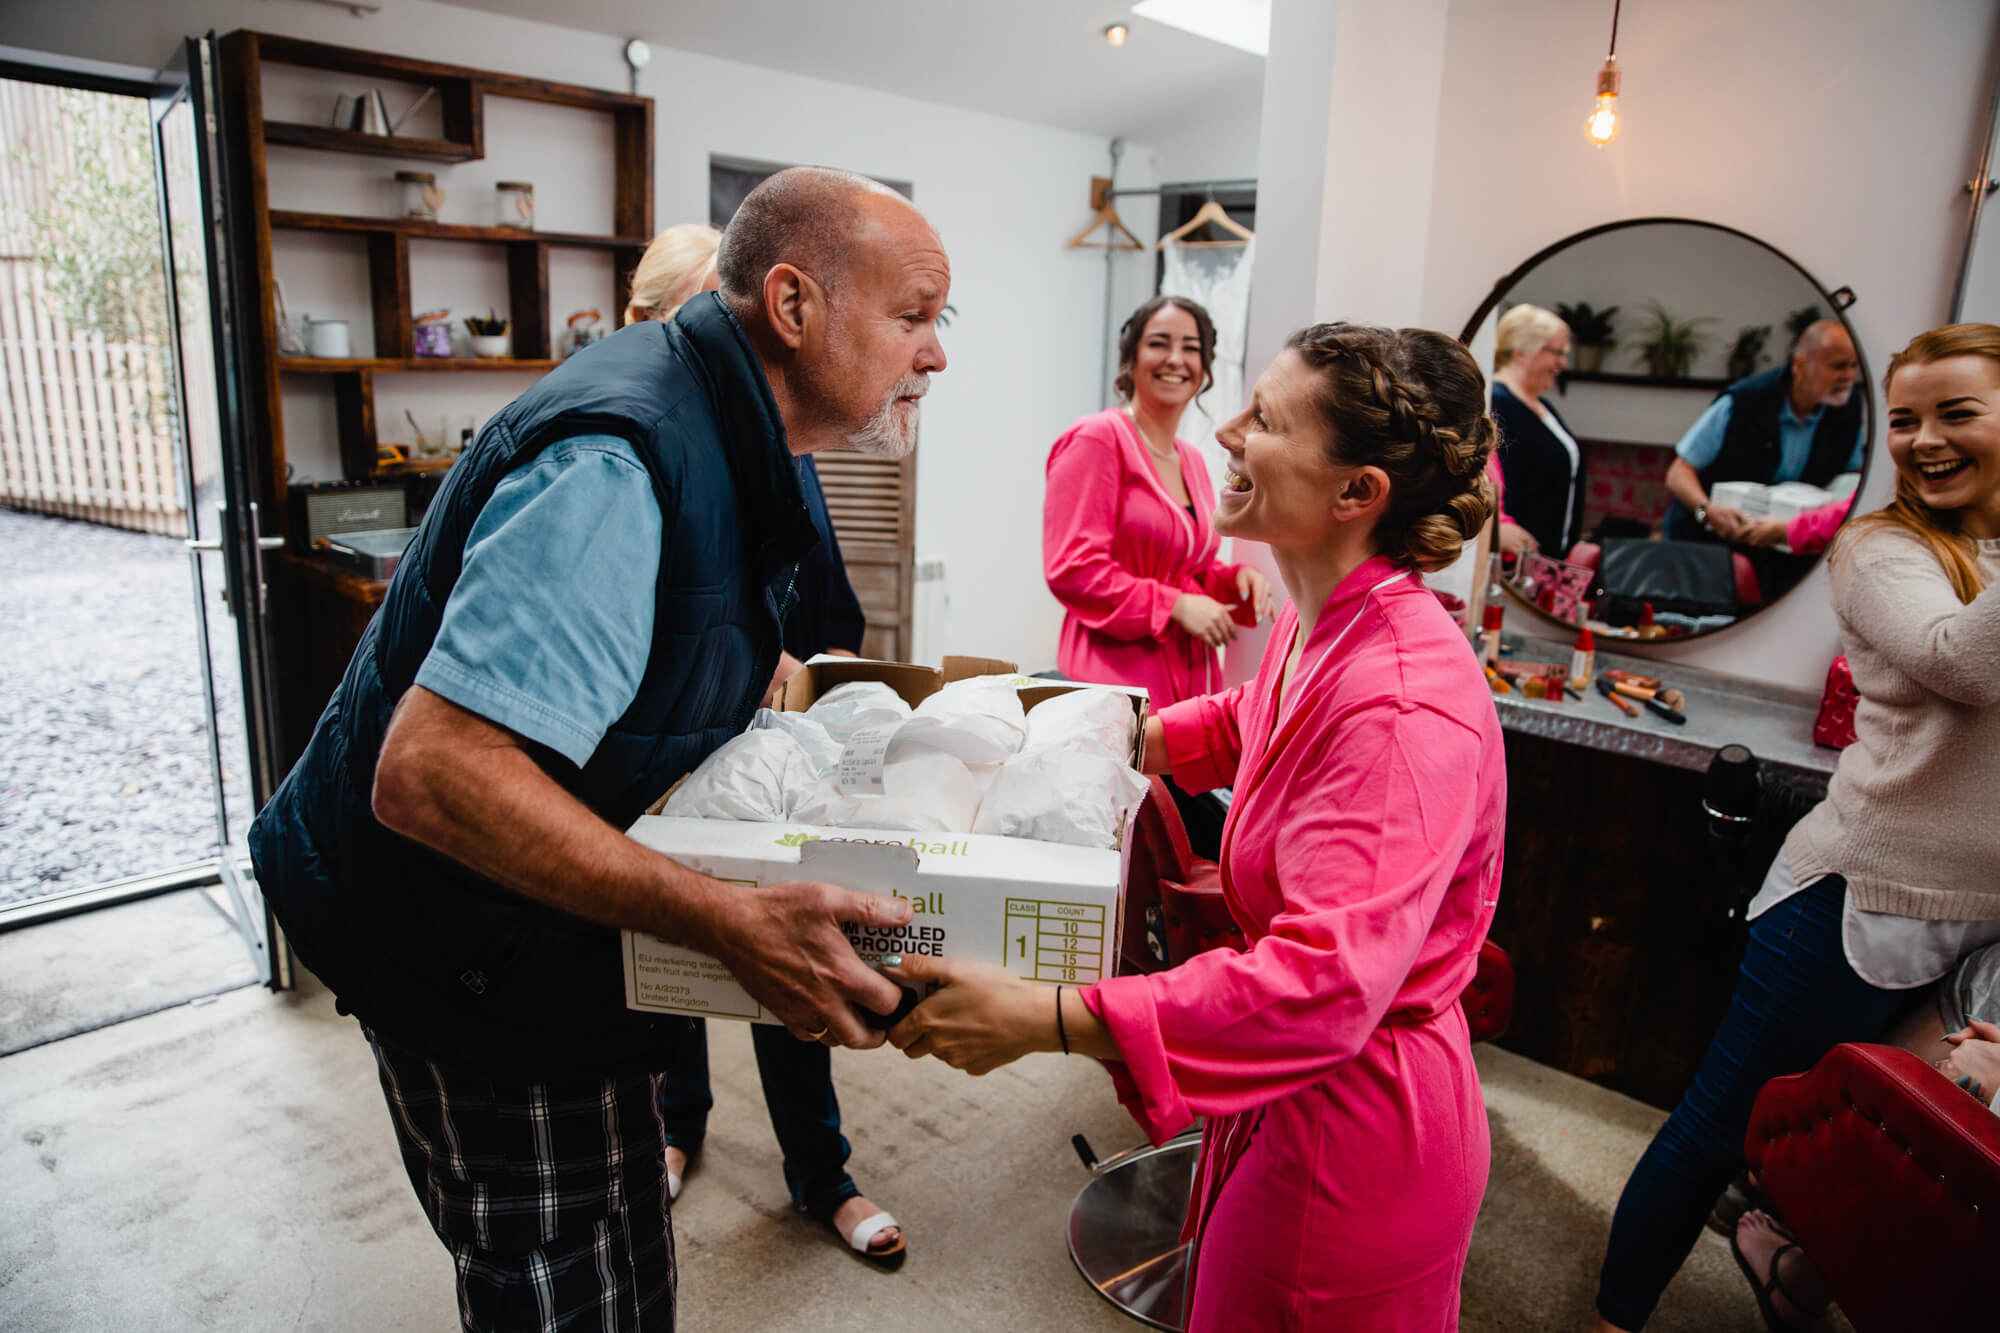 father of bridesmaid delivers sandwiches to bridal party before ceremony